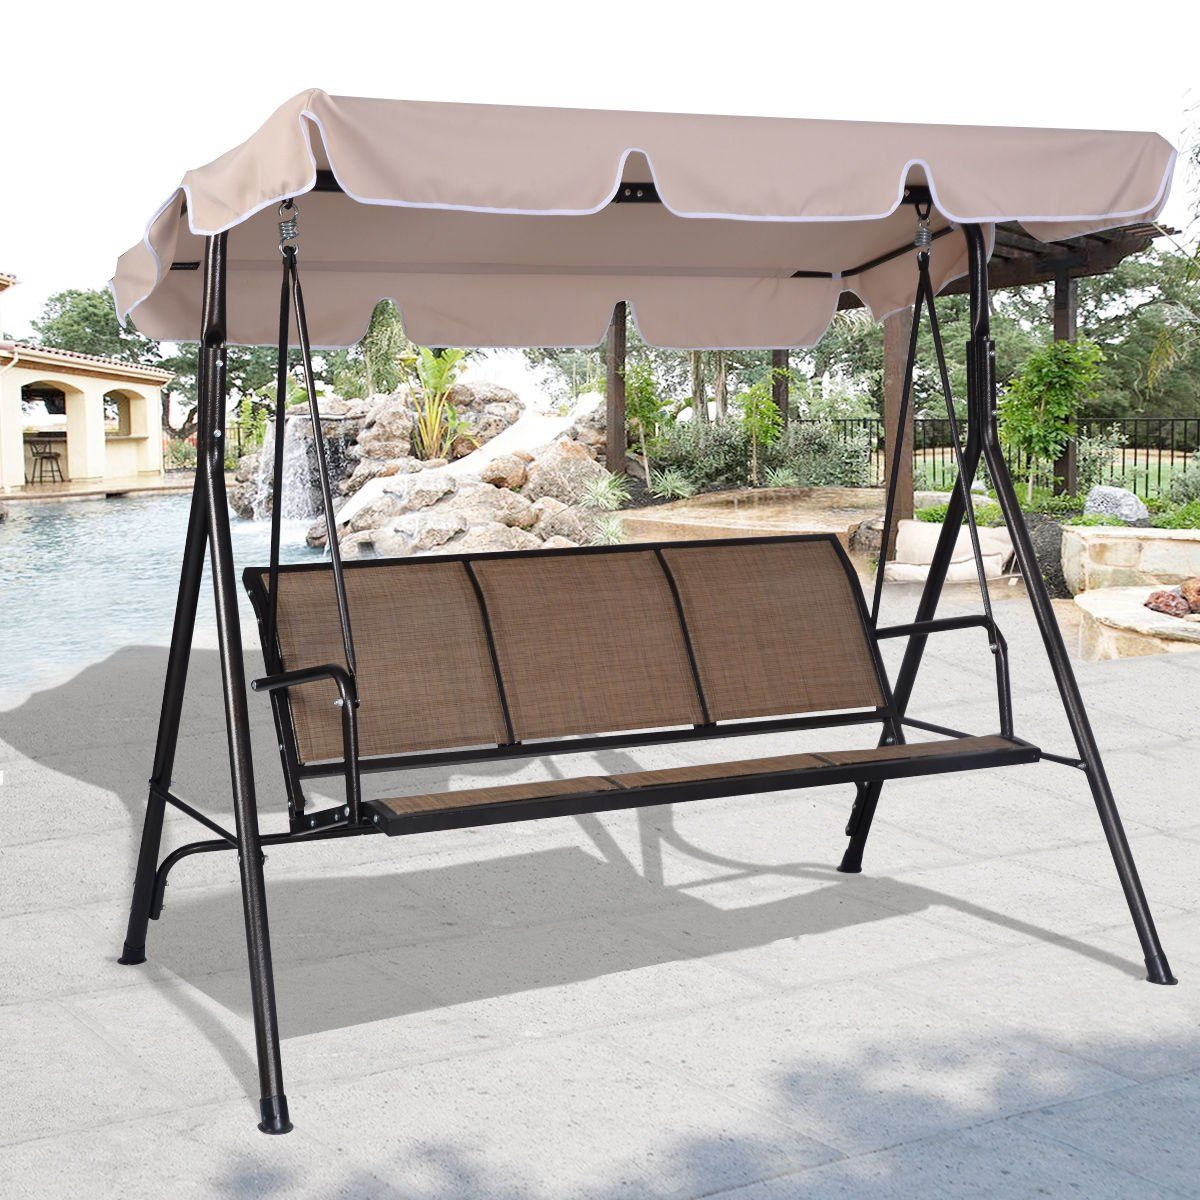 Costway person patio swing outdoor canopy awning yard furniture